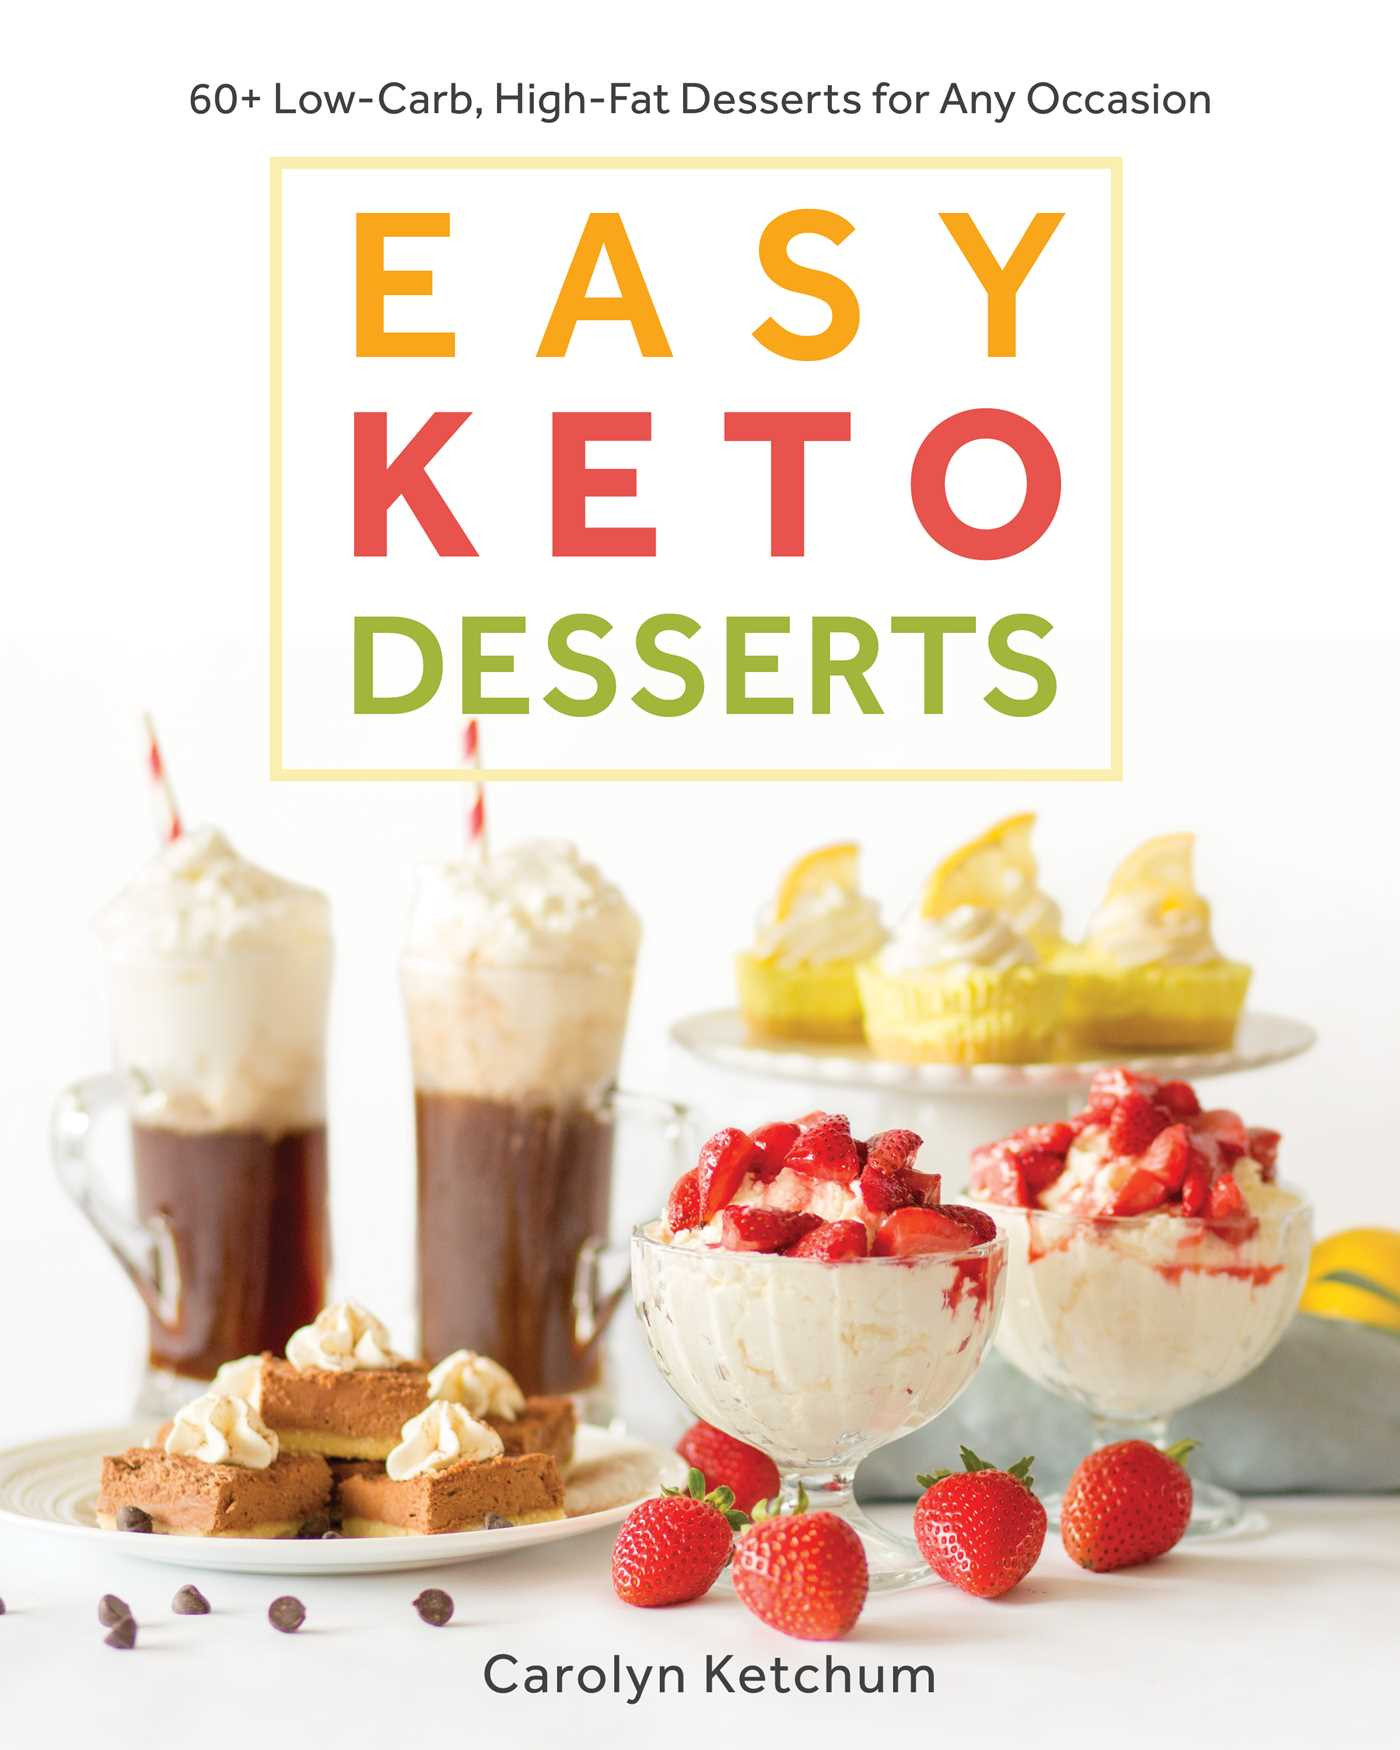 Low Cholesterol Desserts Store Bought  Easy Keto Desserts 60 Low Carb High Fat Desserts for